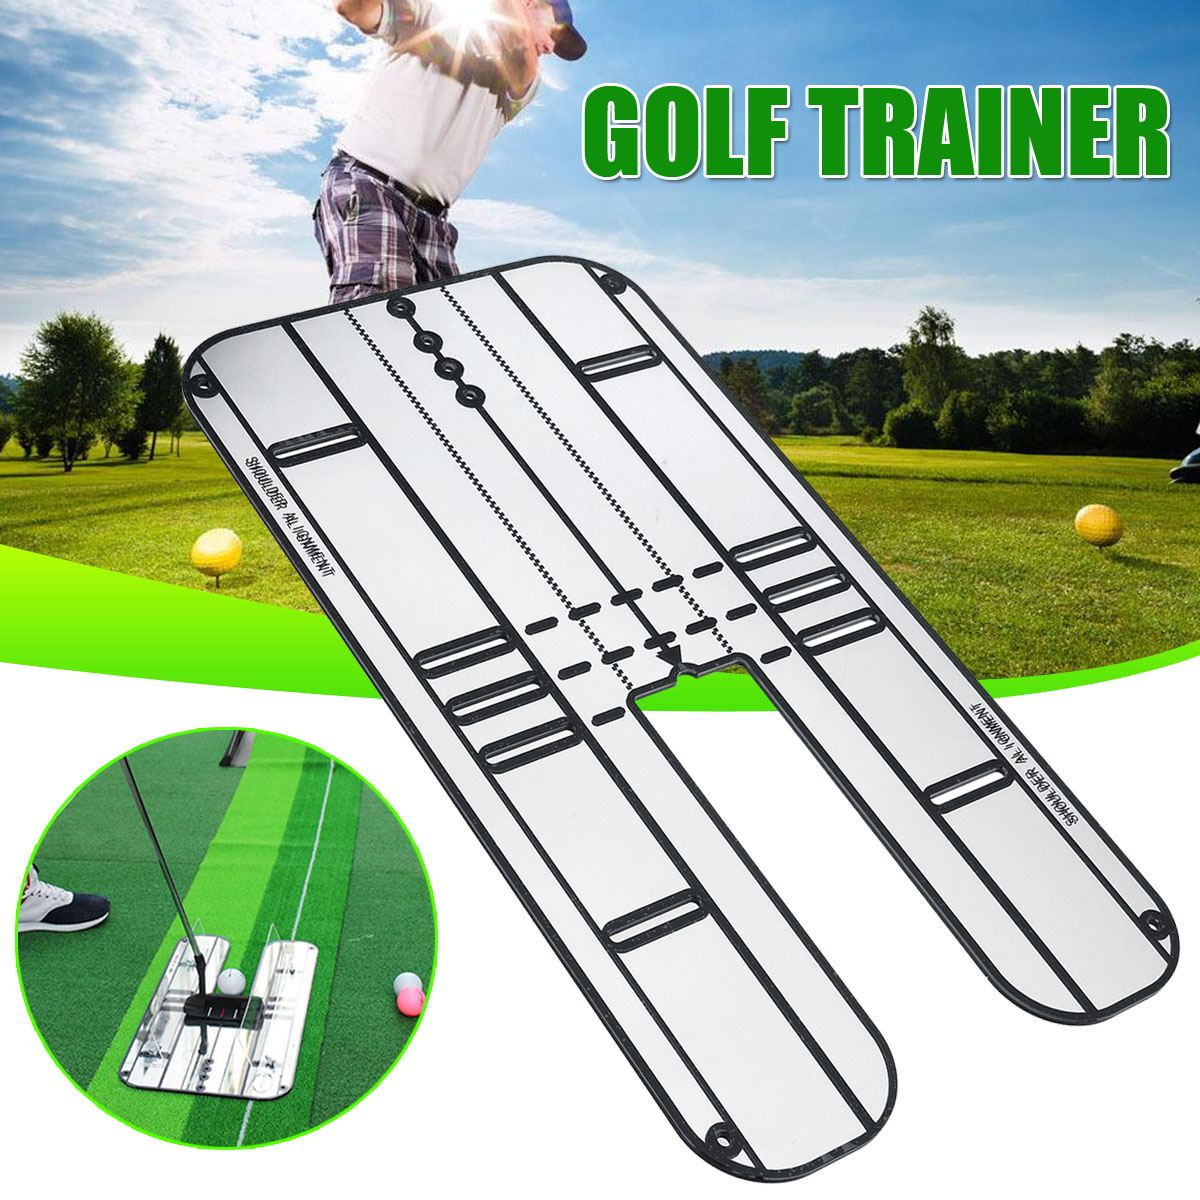 Golf Swing Trainer Portable Golf Putting Mirror Alignment Practice Training Aid Tool Eye Line Golf Accessories